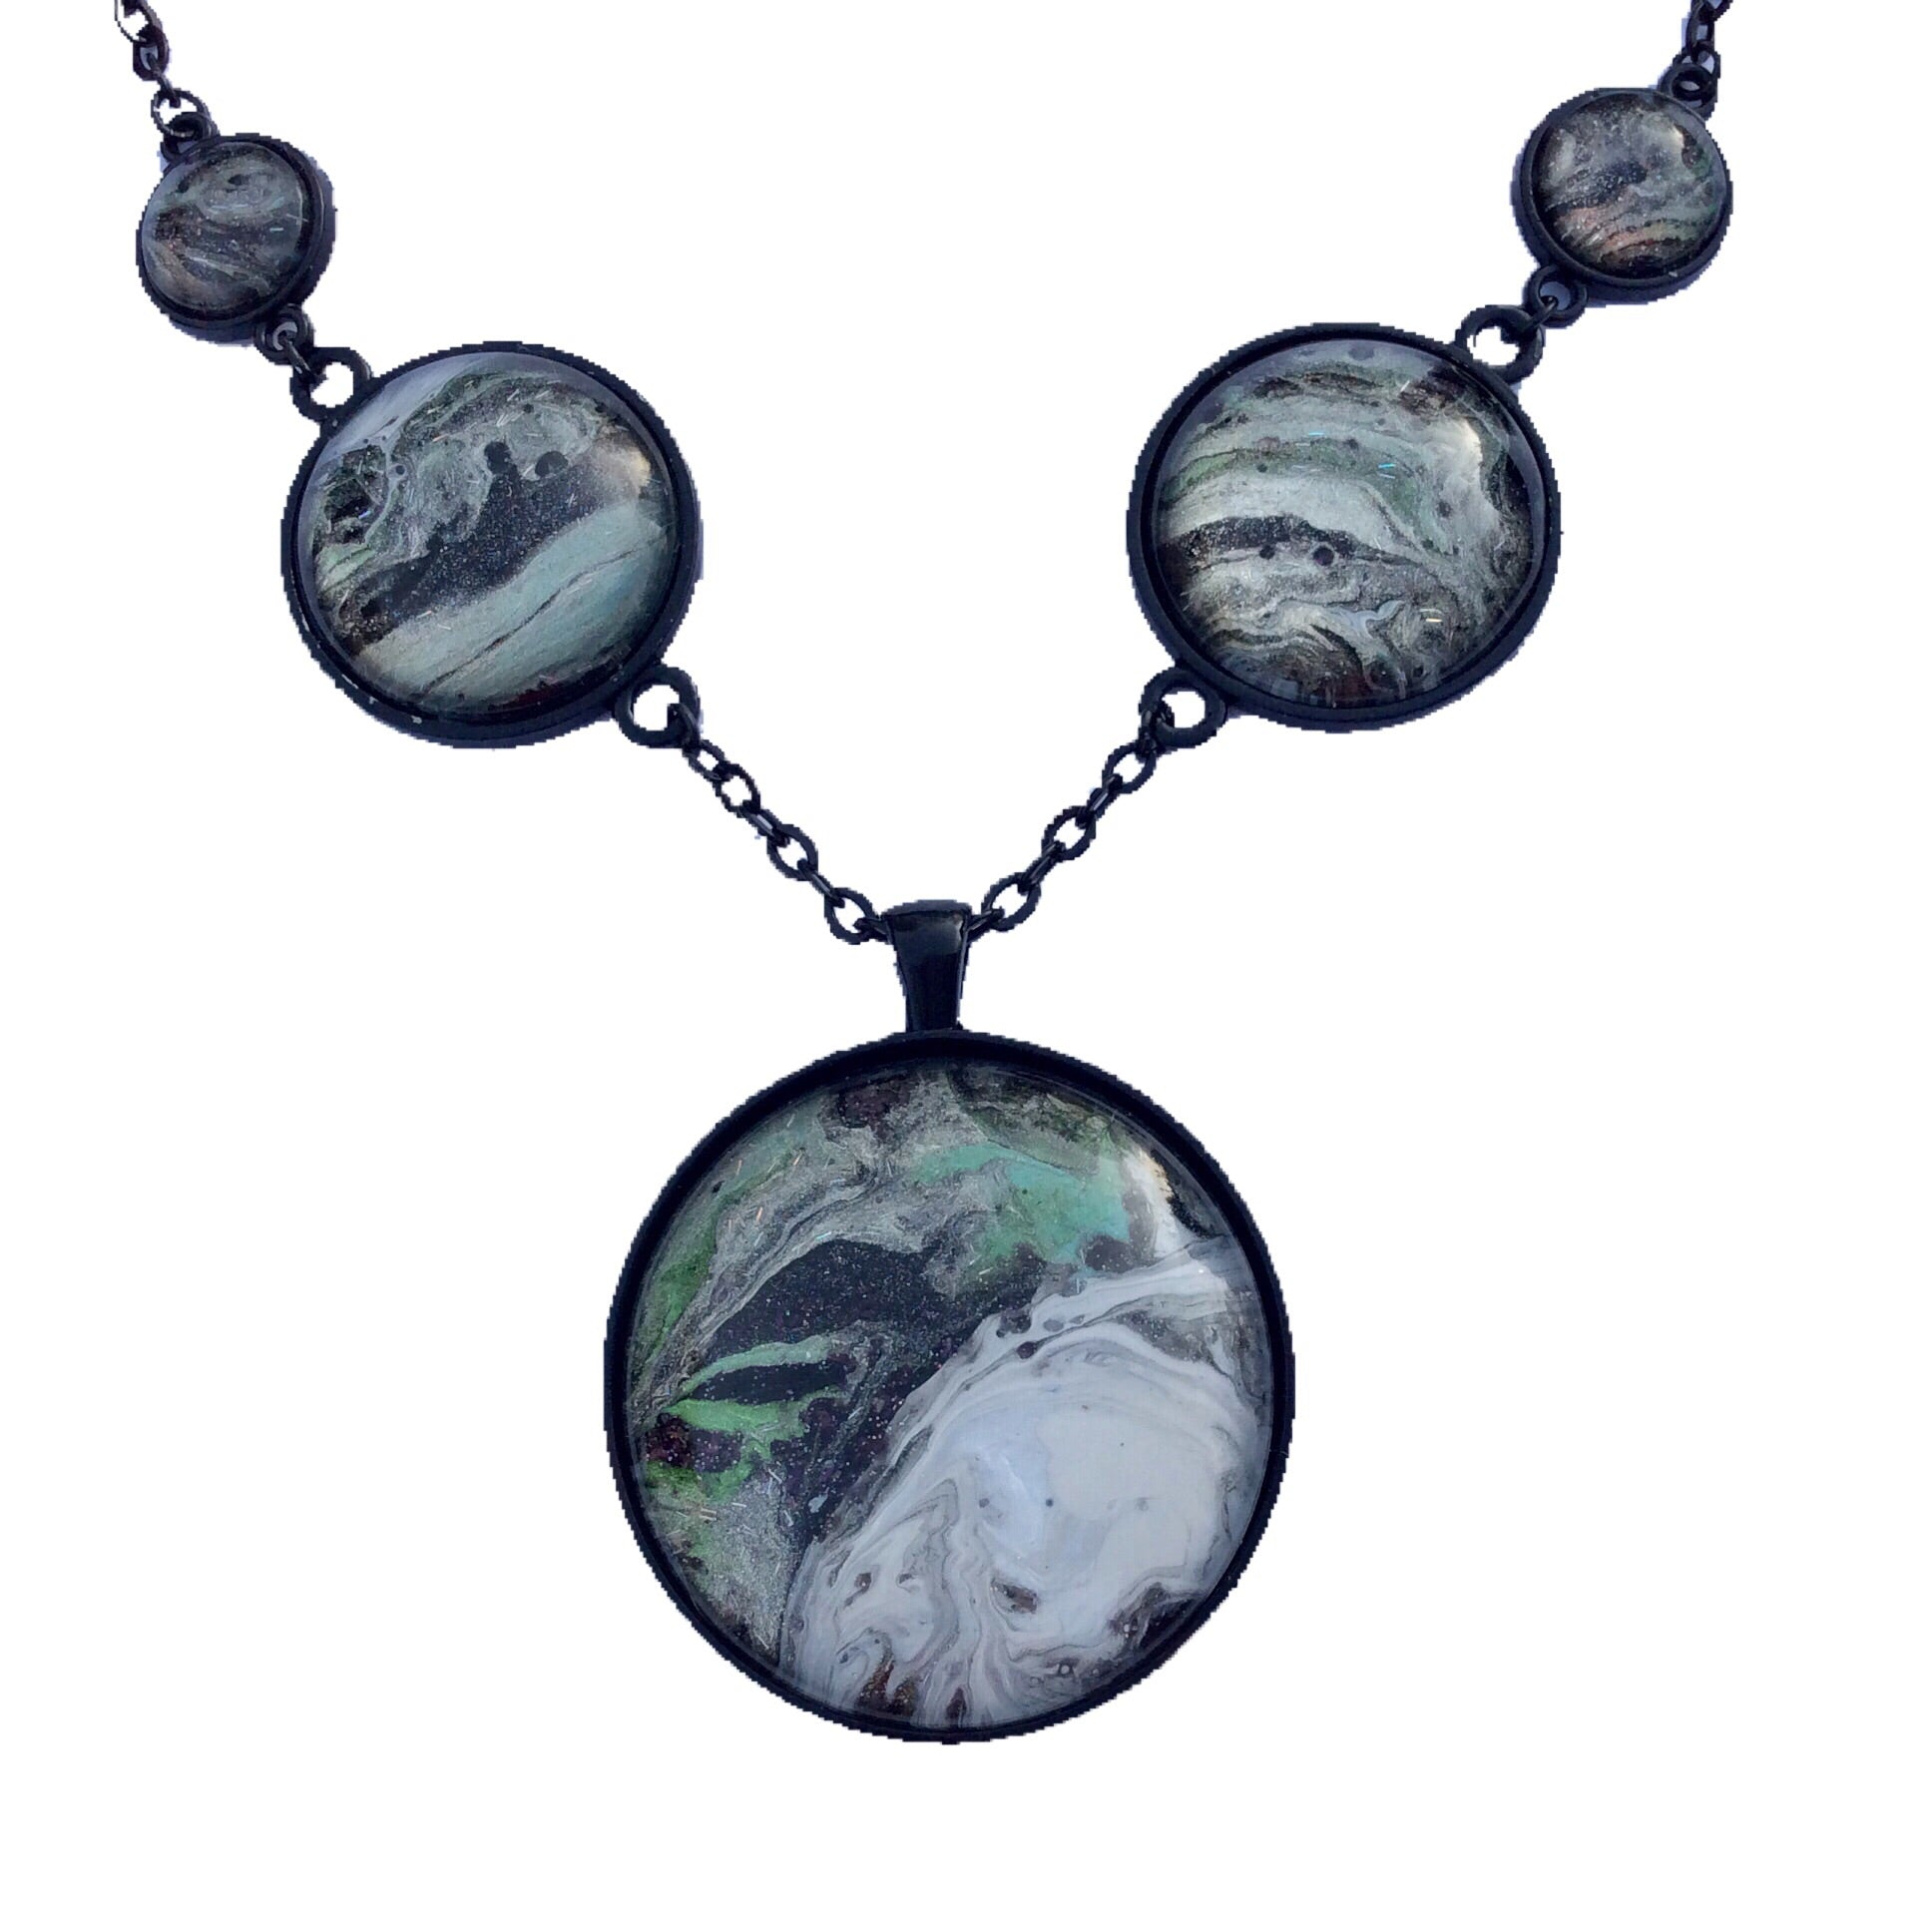 Five Pendant Necklace, White, Green and Black Galaxy Design-Jewelry-Fullamoon Designs